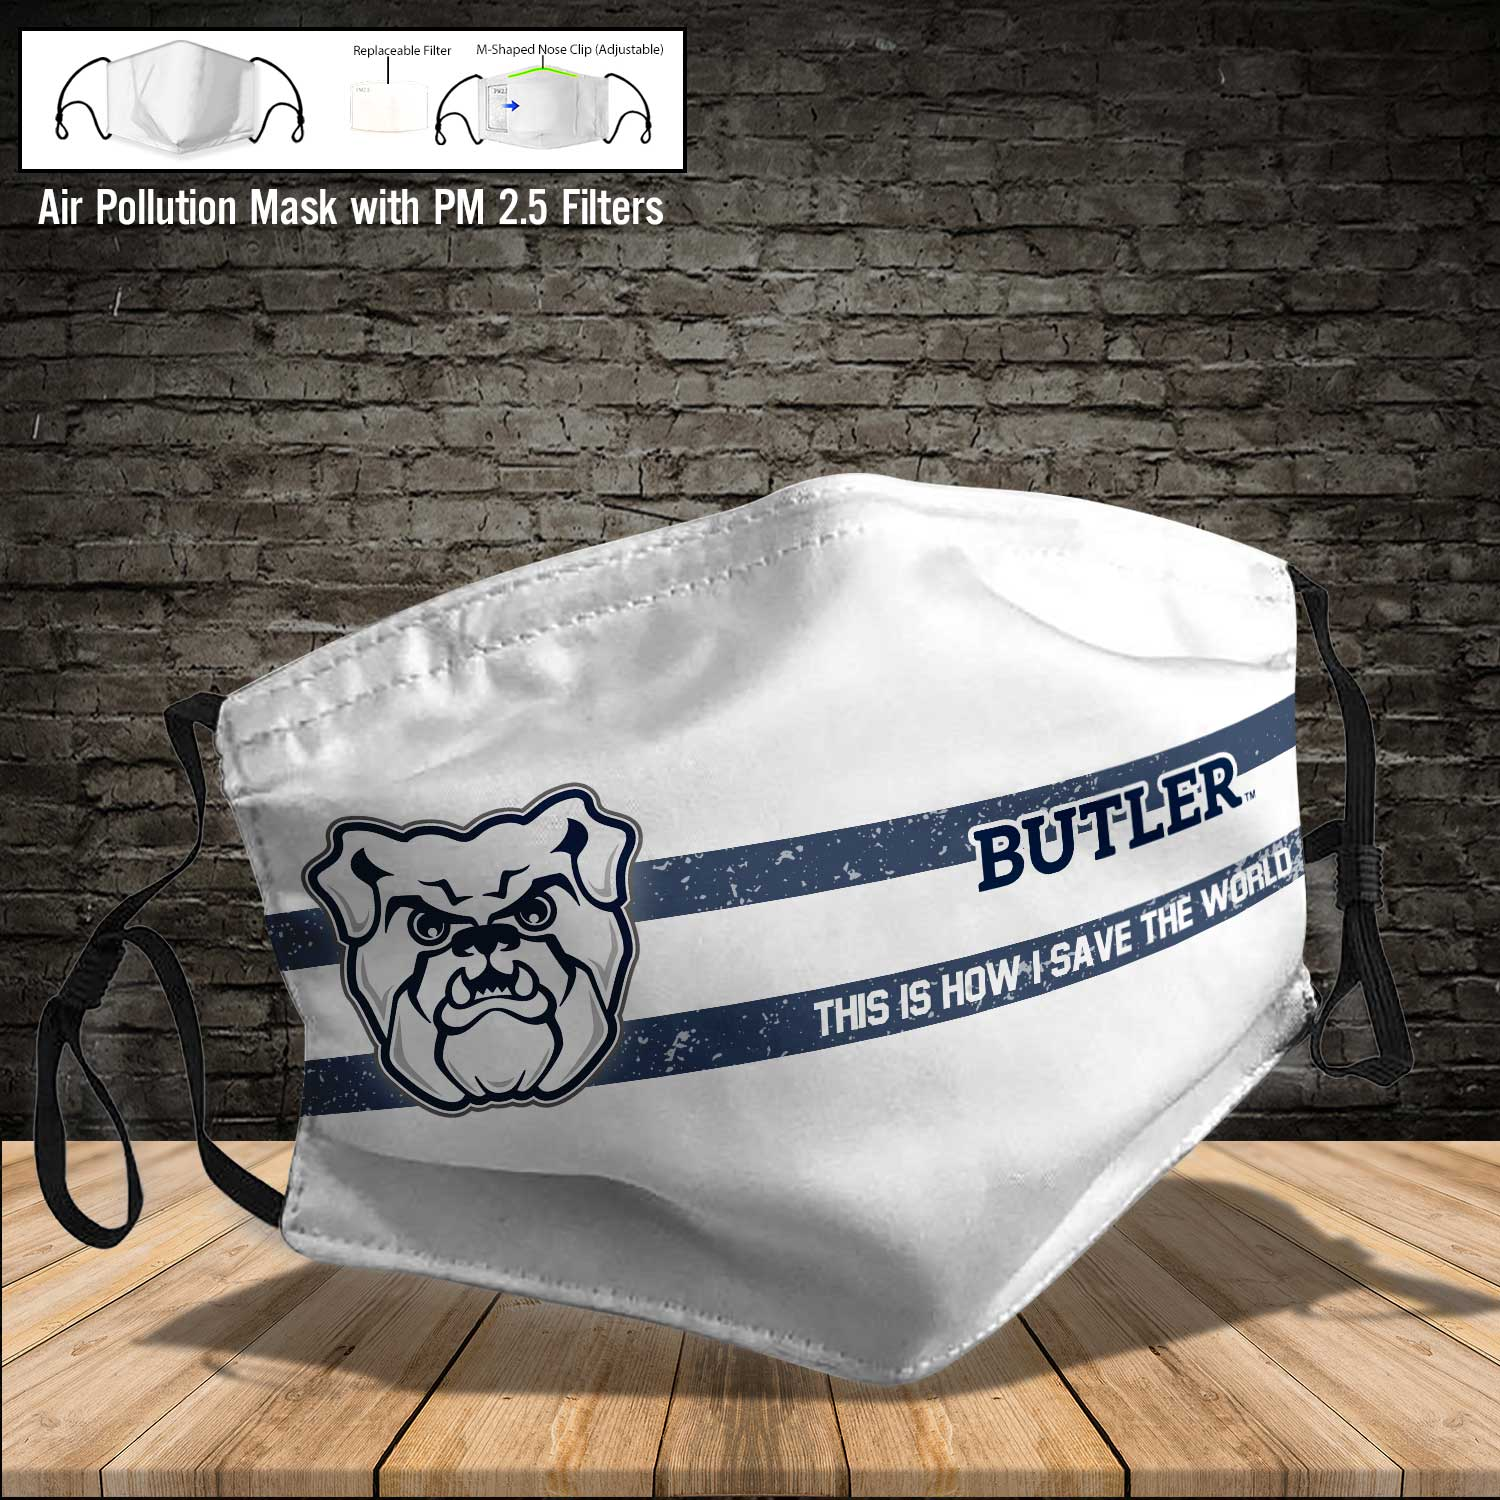 Butler bulldogs this is how i save the world face mask 3